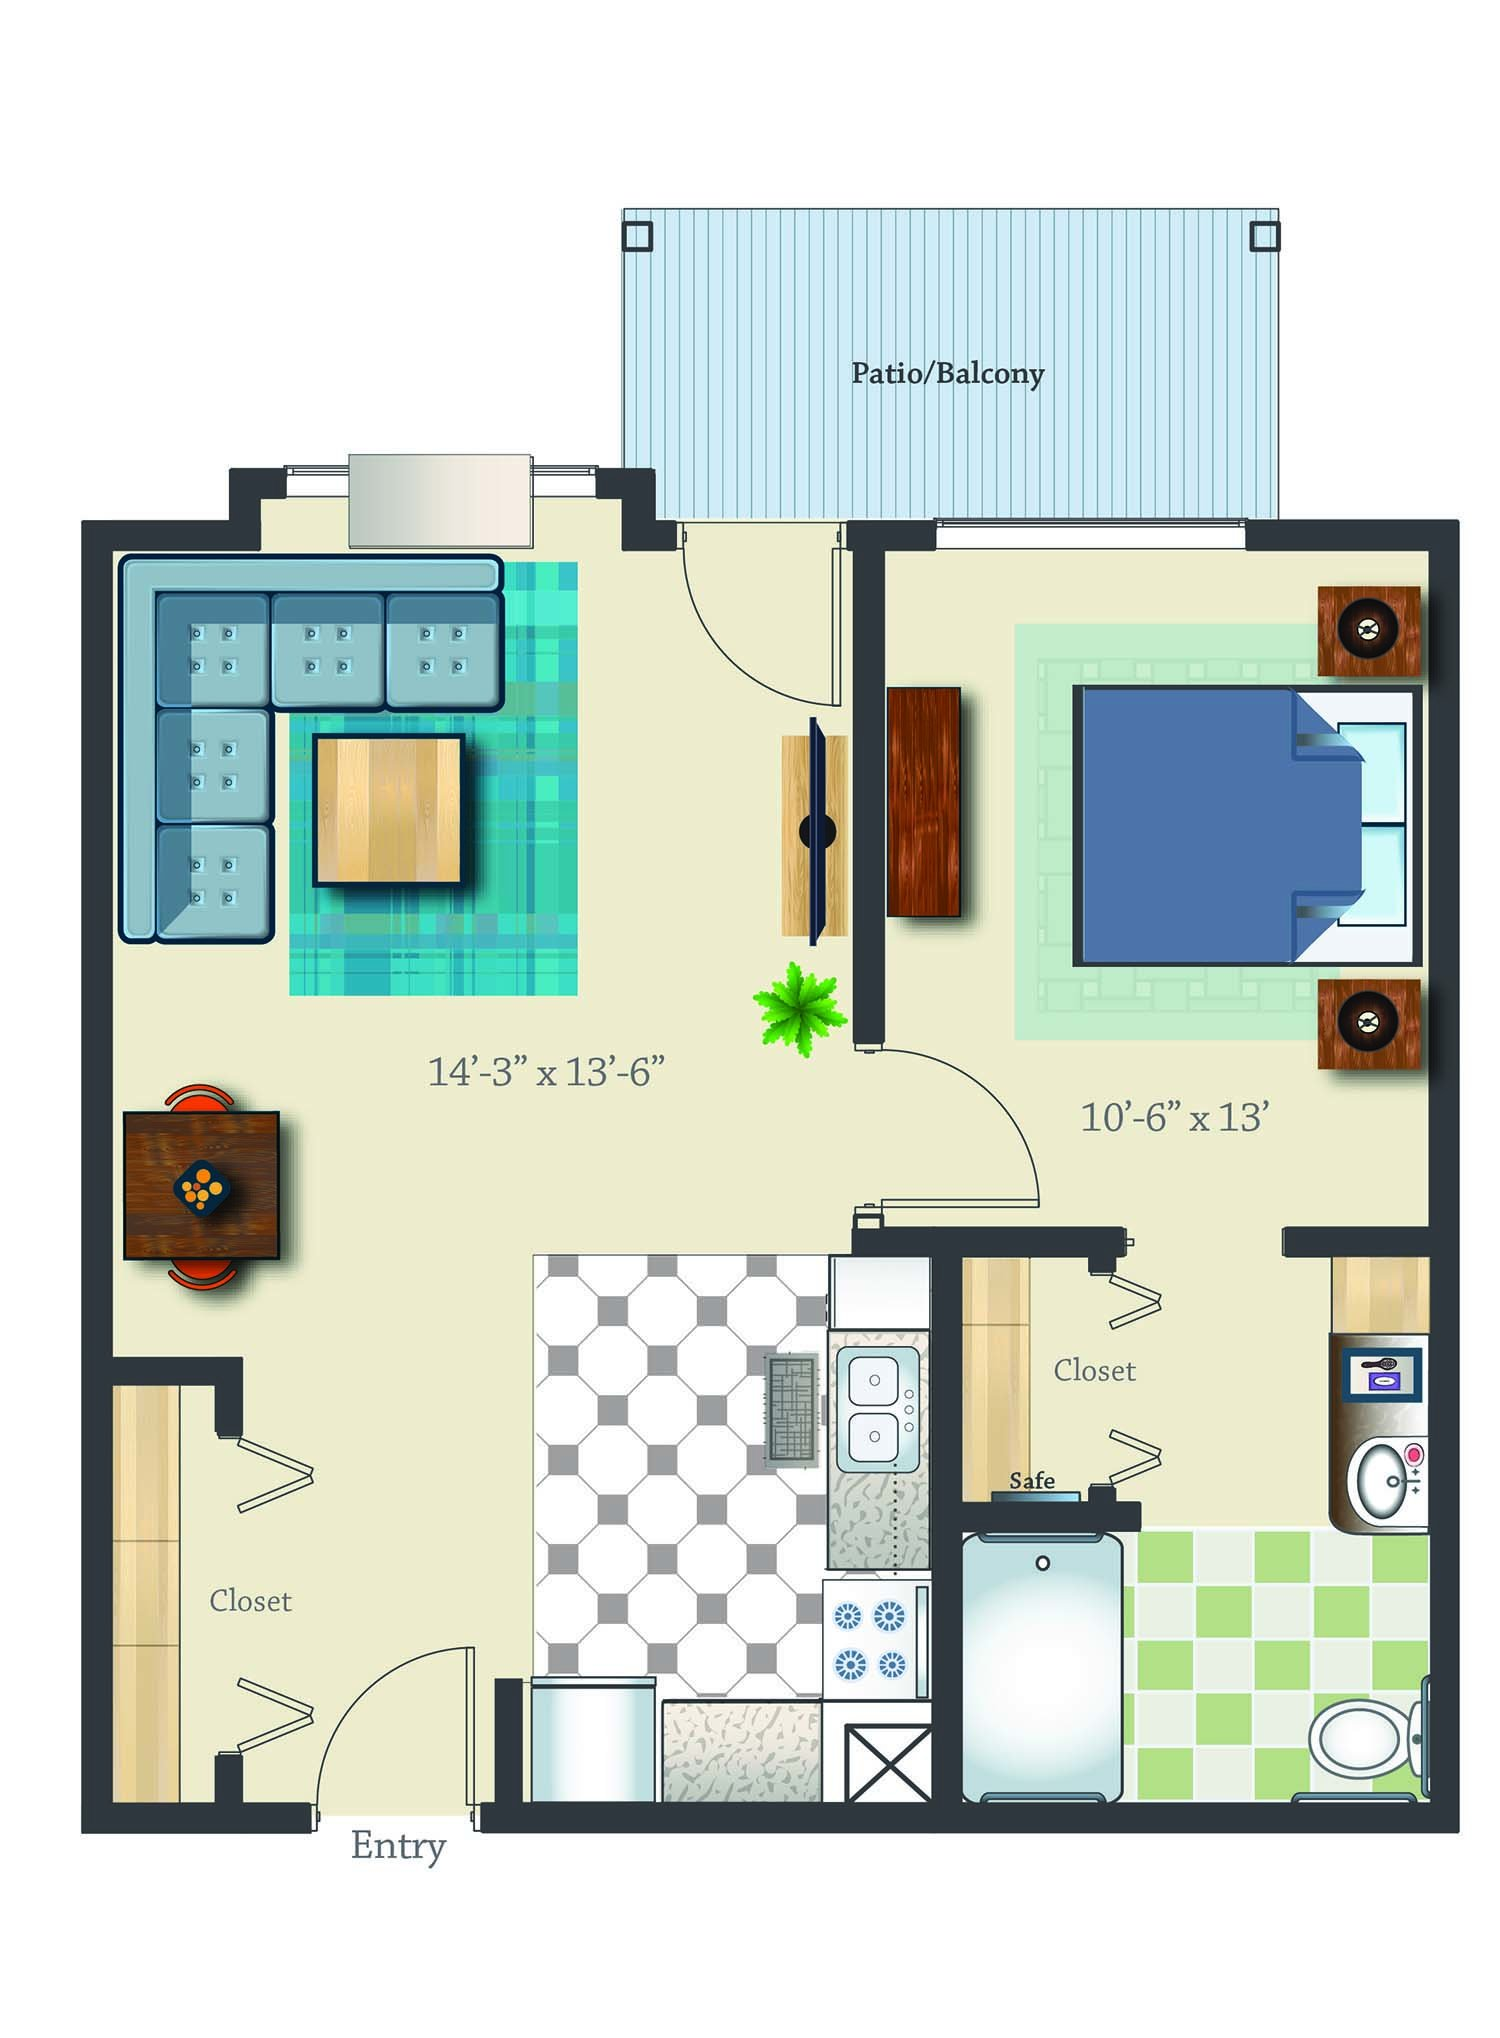 retirement community memory care in m oregon one bed one bath 652 sq ft retirement suite